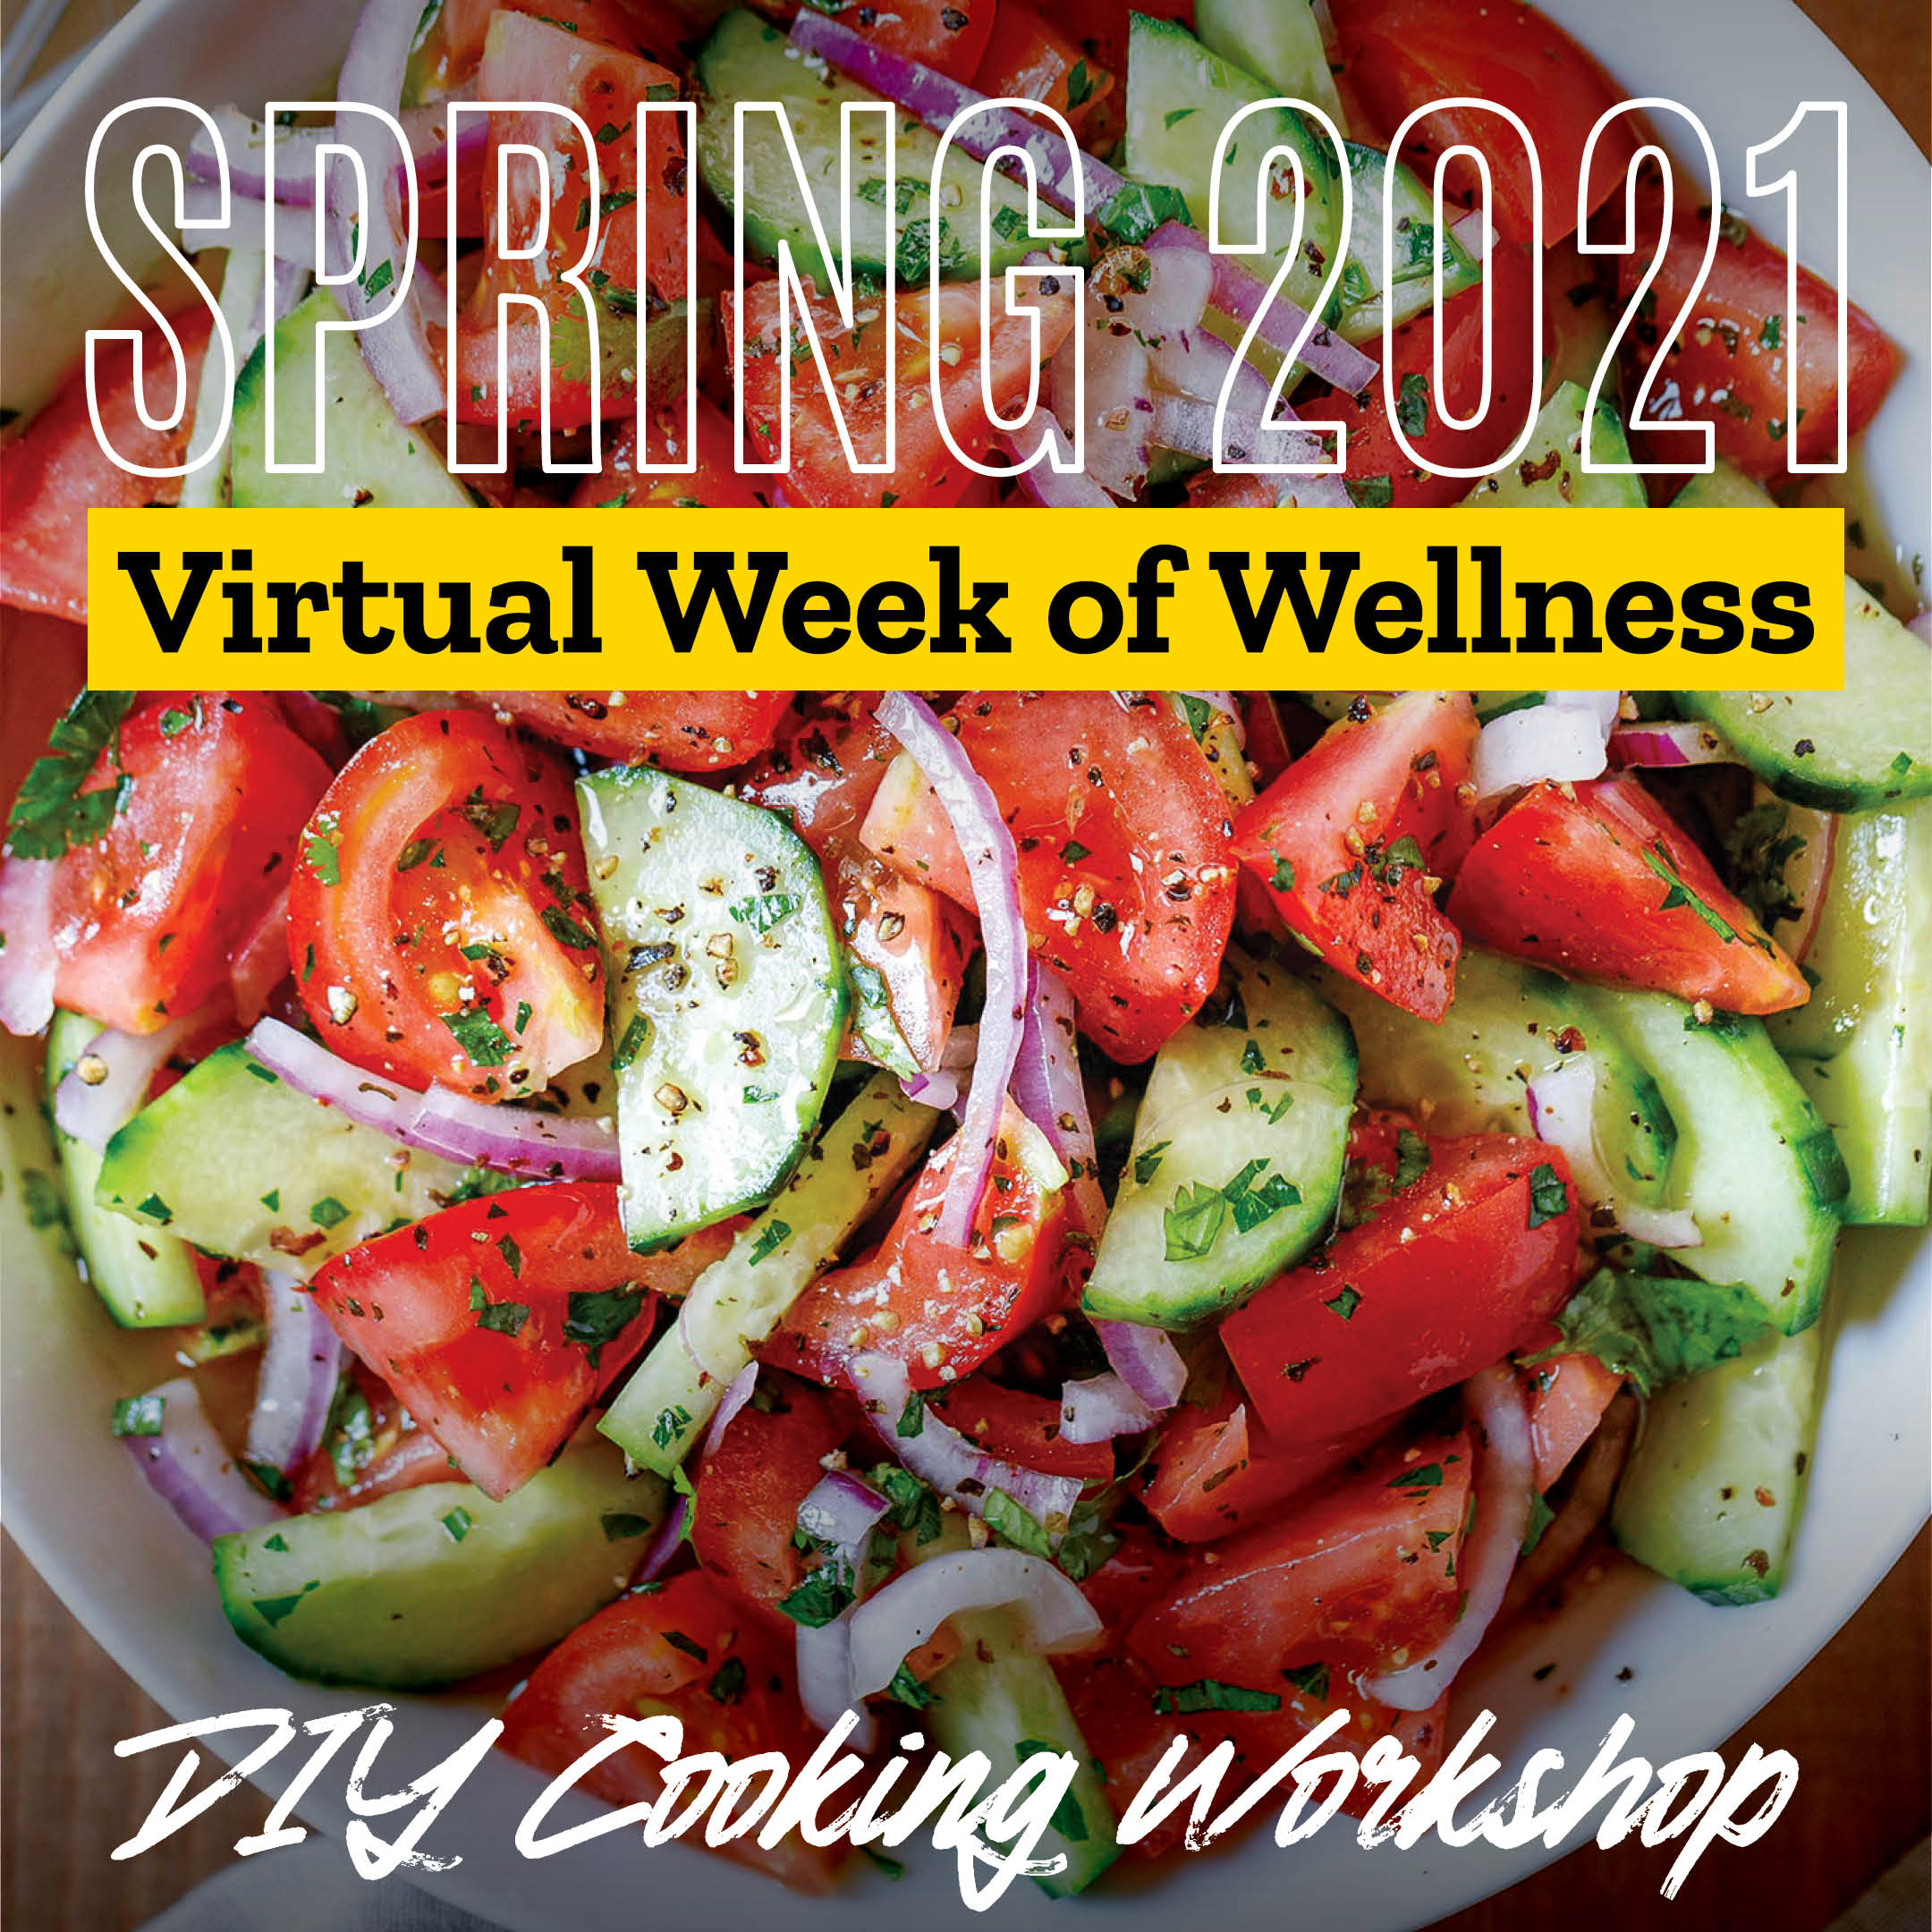 Virtual Week of Wellness: DIY Cooking Workshop